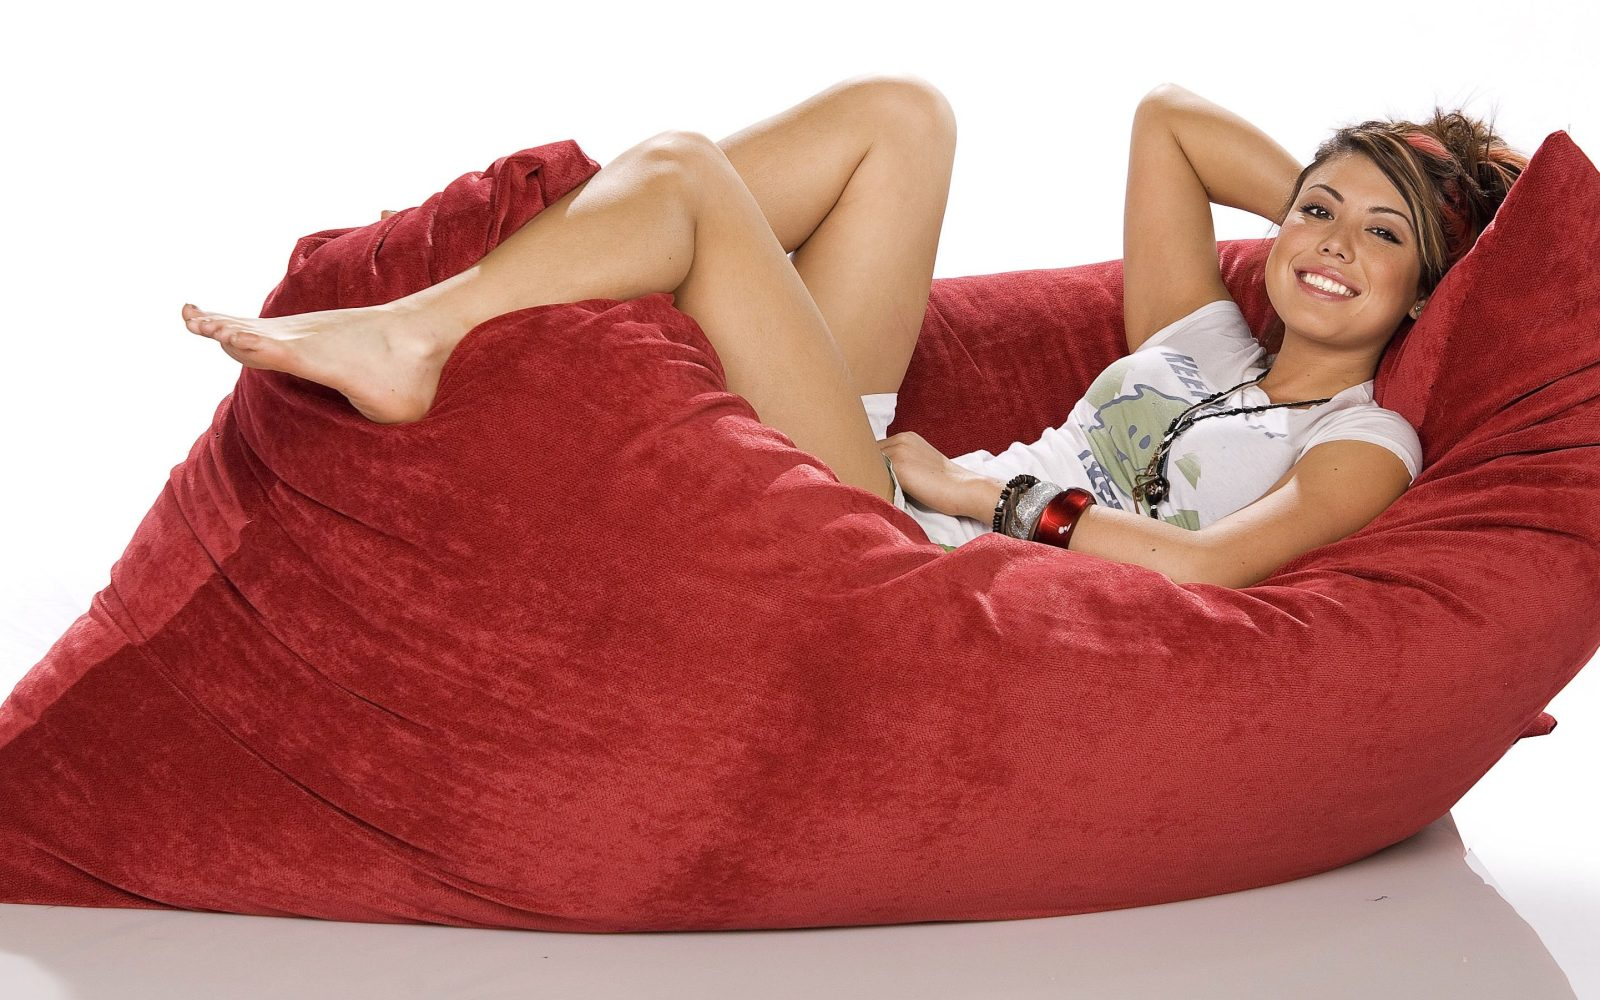 Get an extra 20% off Sumo's high-end bean bag chairs + free